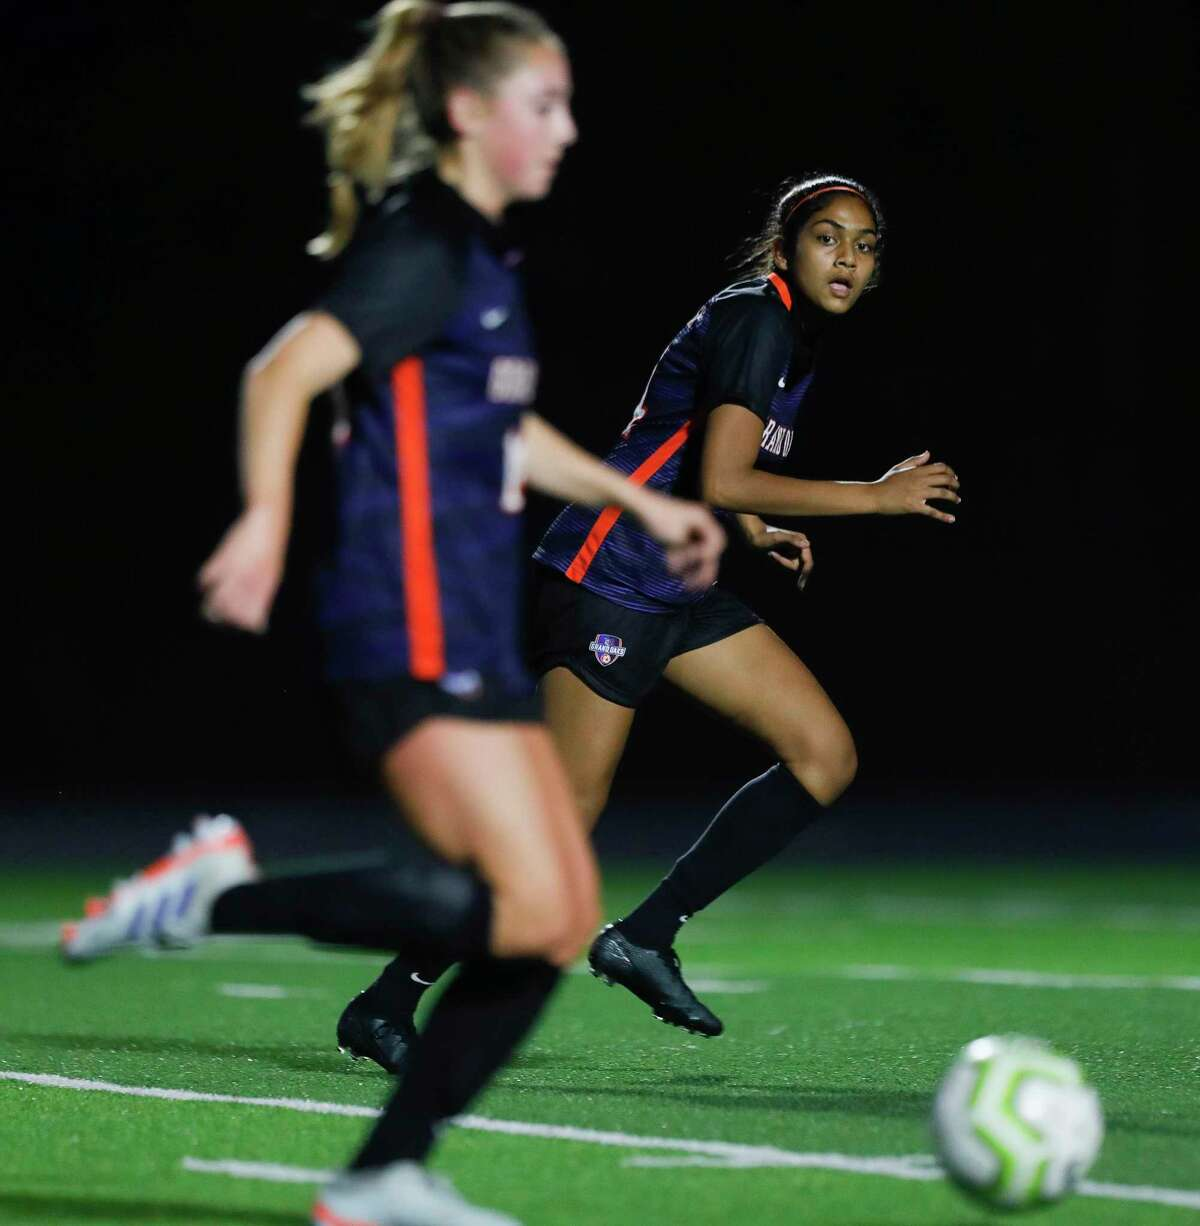 Shown here earlier this season, Grand Oaks forward Veronica Patel (14), right, and Reese Rupe (18) each scored two goals Thursday night as the Grizzlies won their first-ever playoff game over Aldine Davis in Region II-6A.